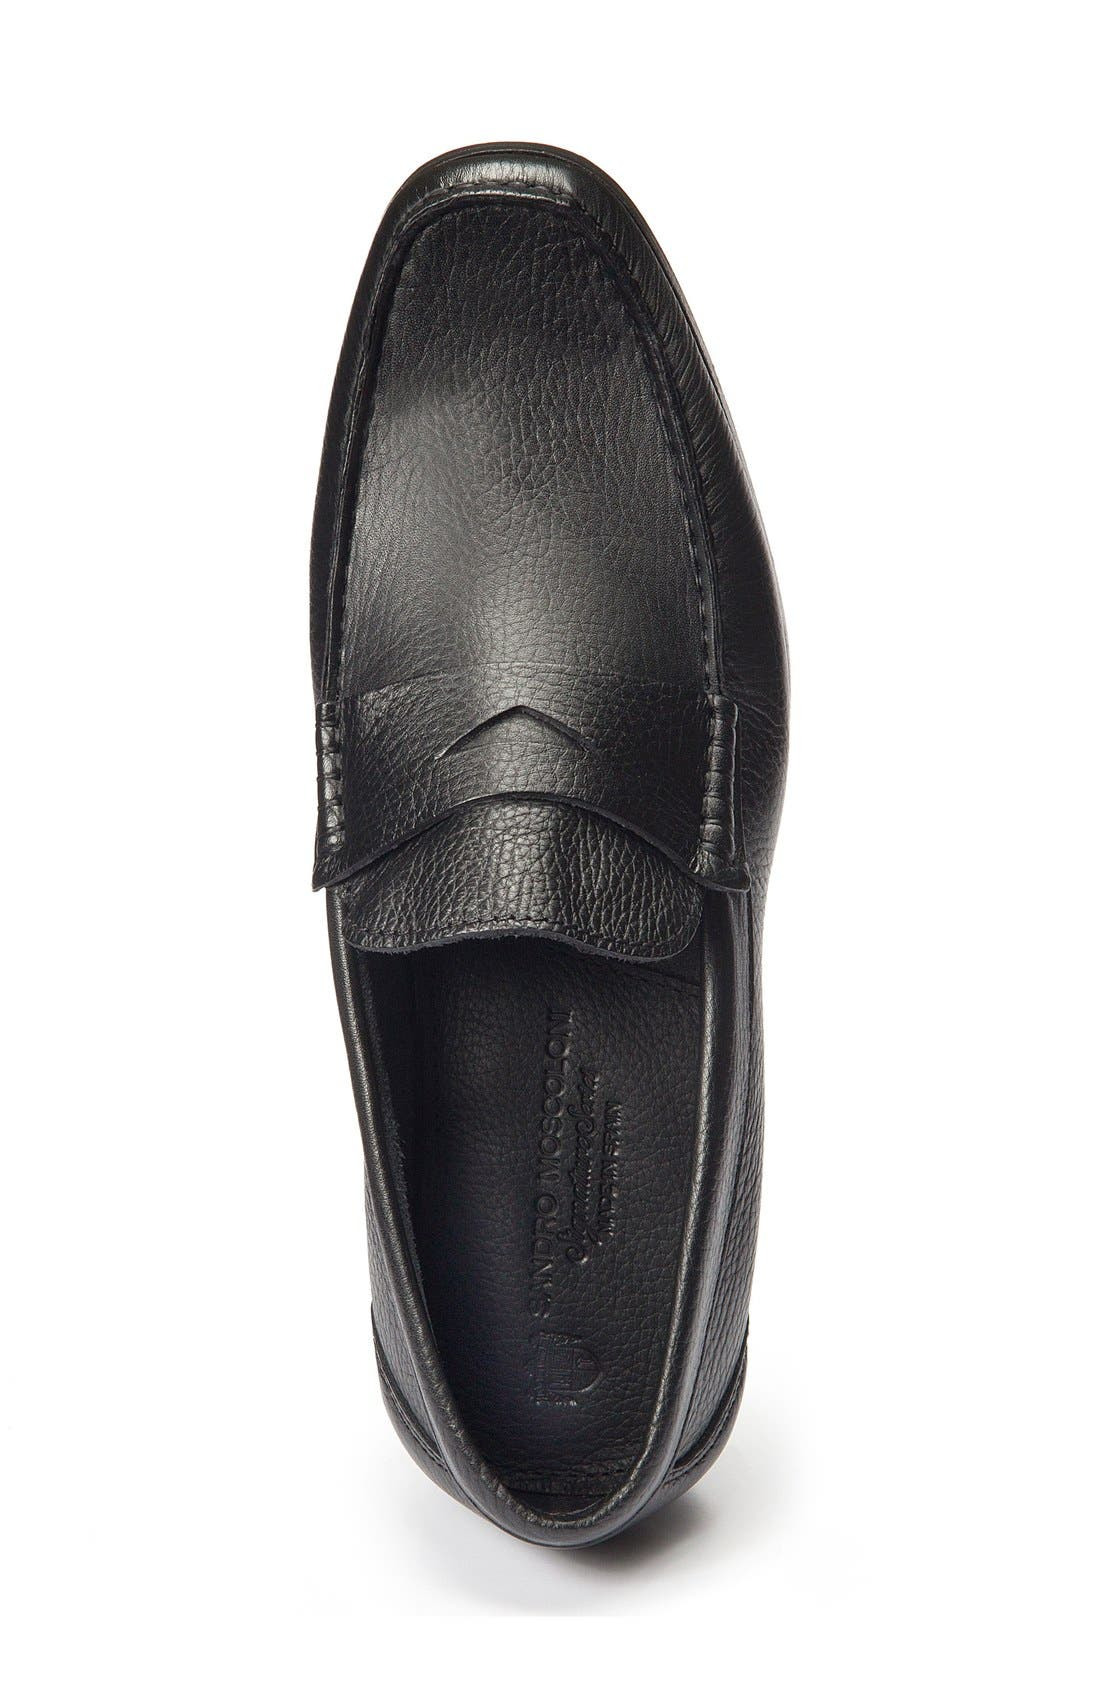 Segovia Penny Loafer,                             Alternate thumbnail 4, color,                             BLACK LEATHER